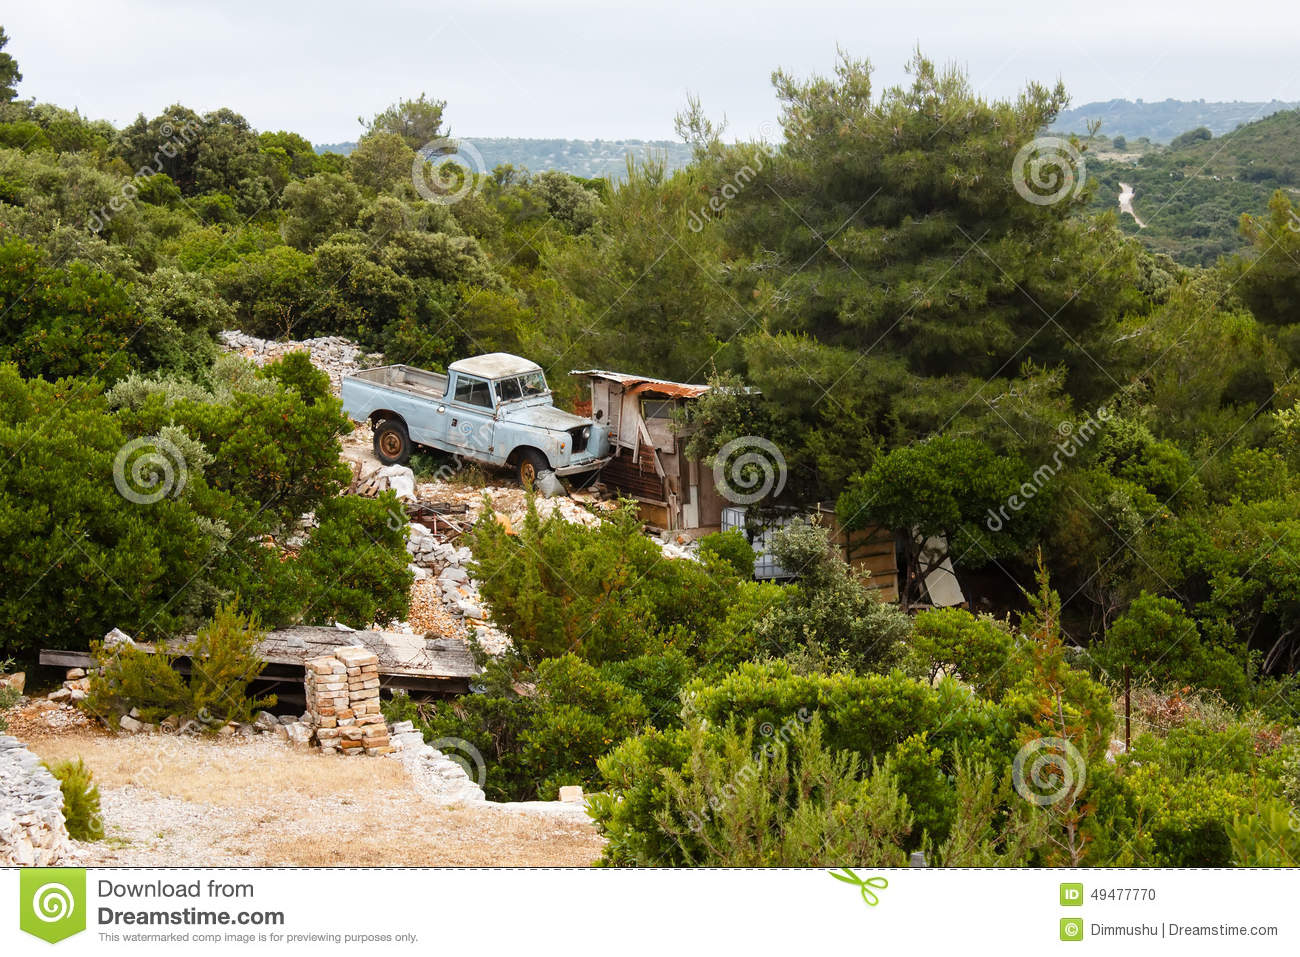 Old Blue Land Rover Pickup Standing Near Small House In